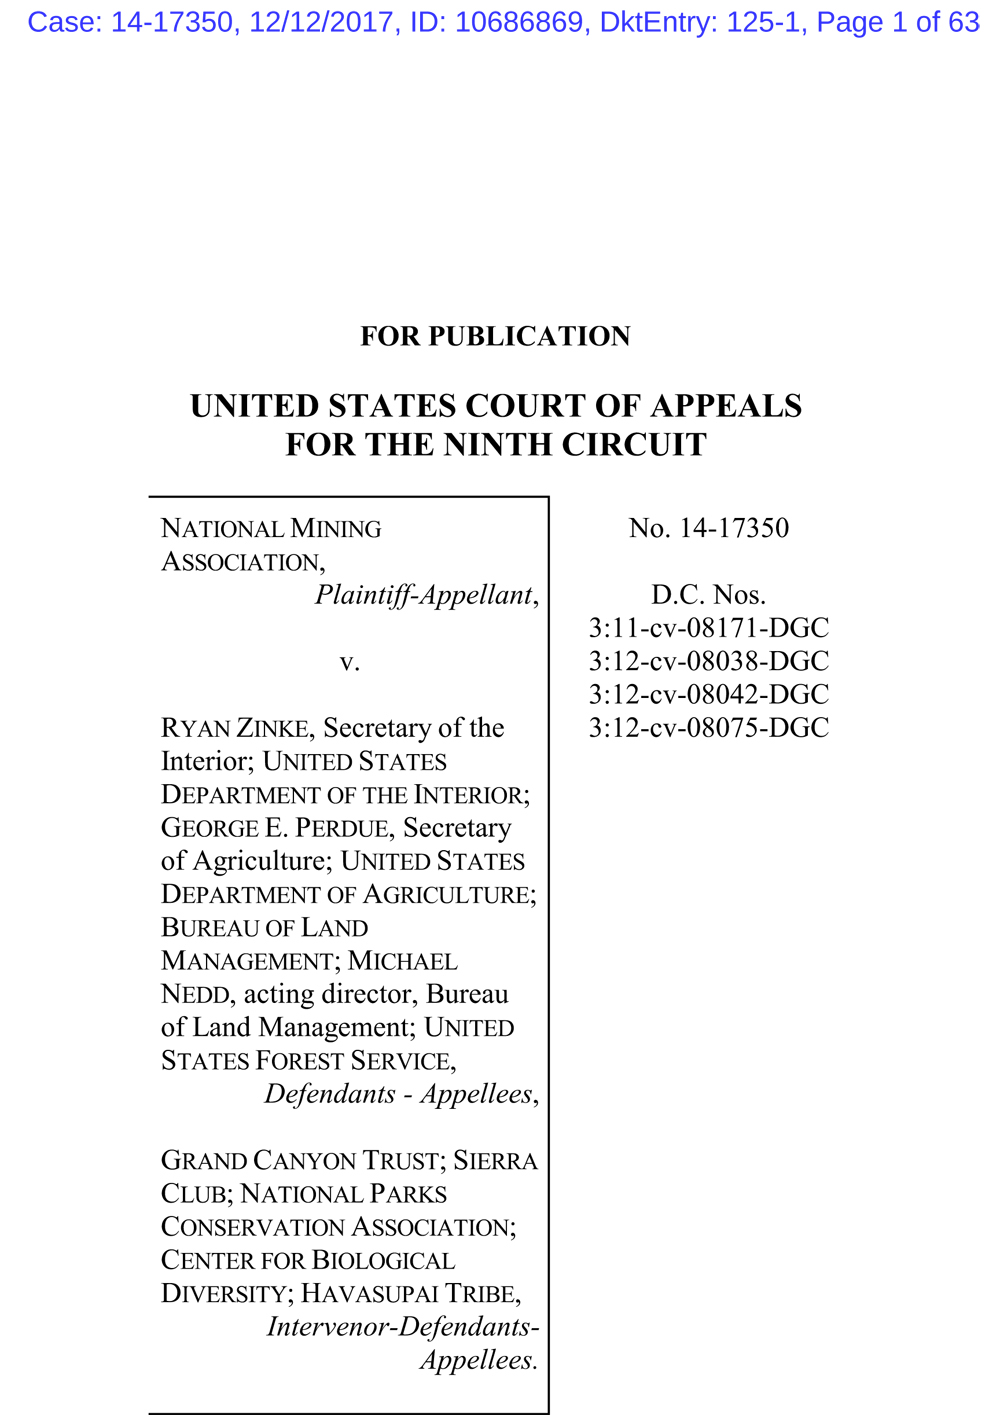 9th Circuit decision upholding Grand Canyon mineral withdrawal, first page